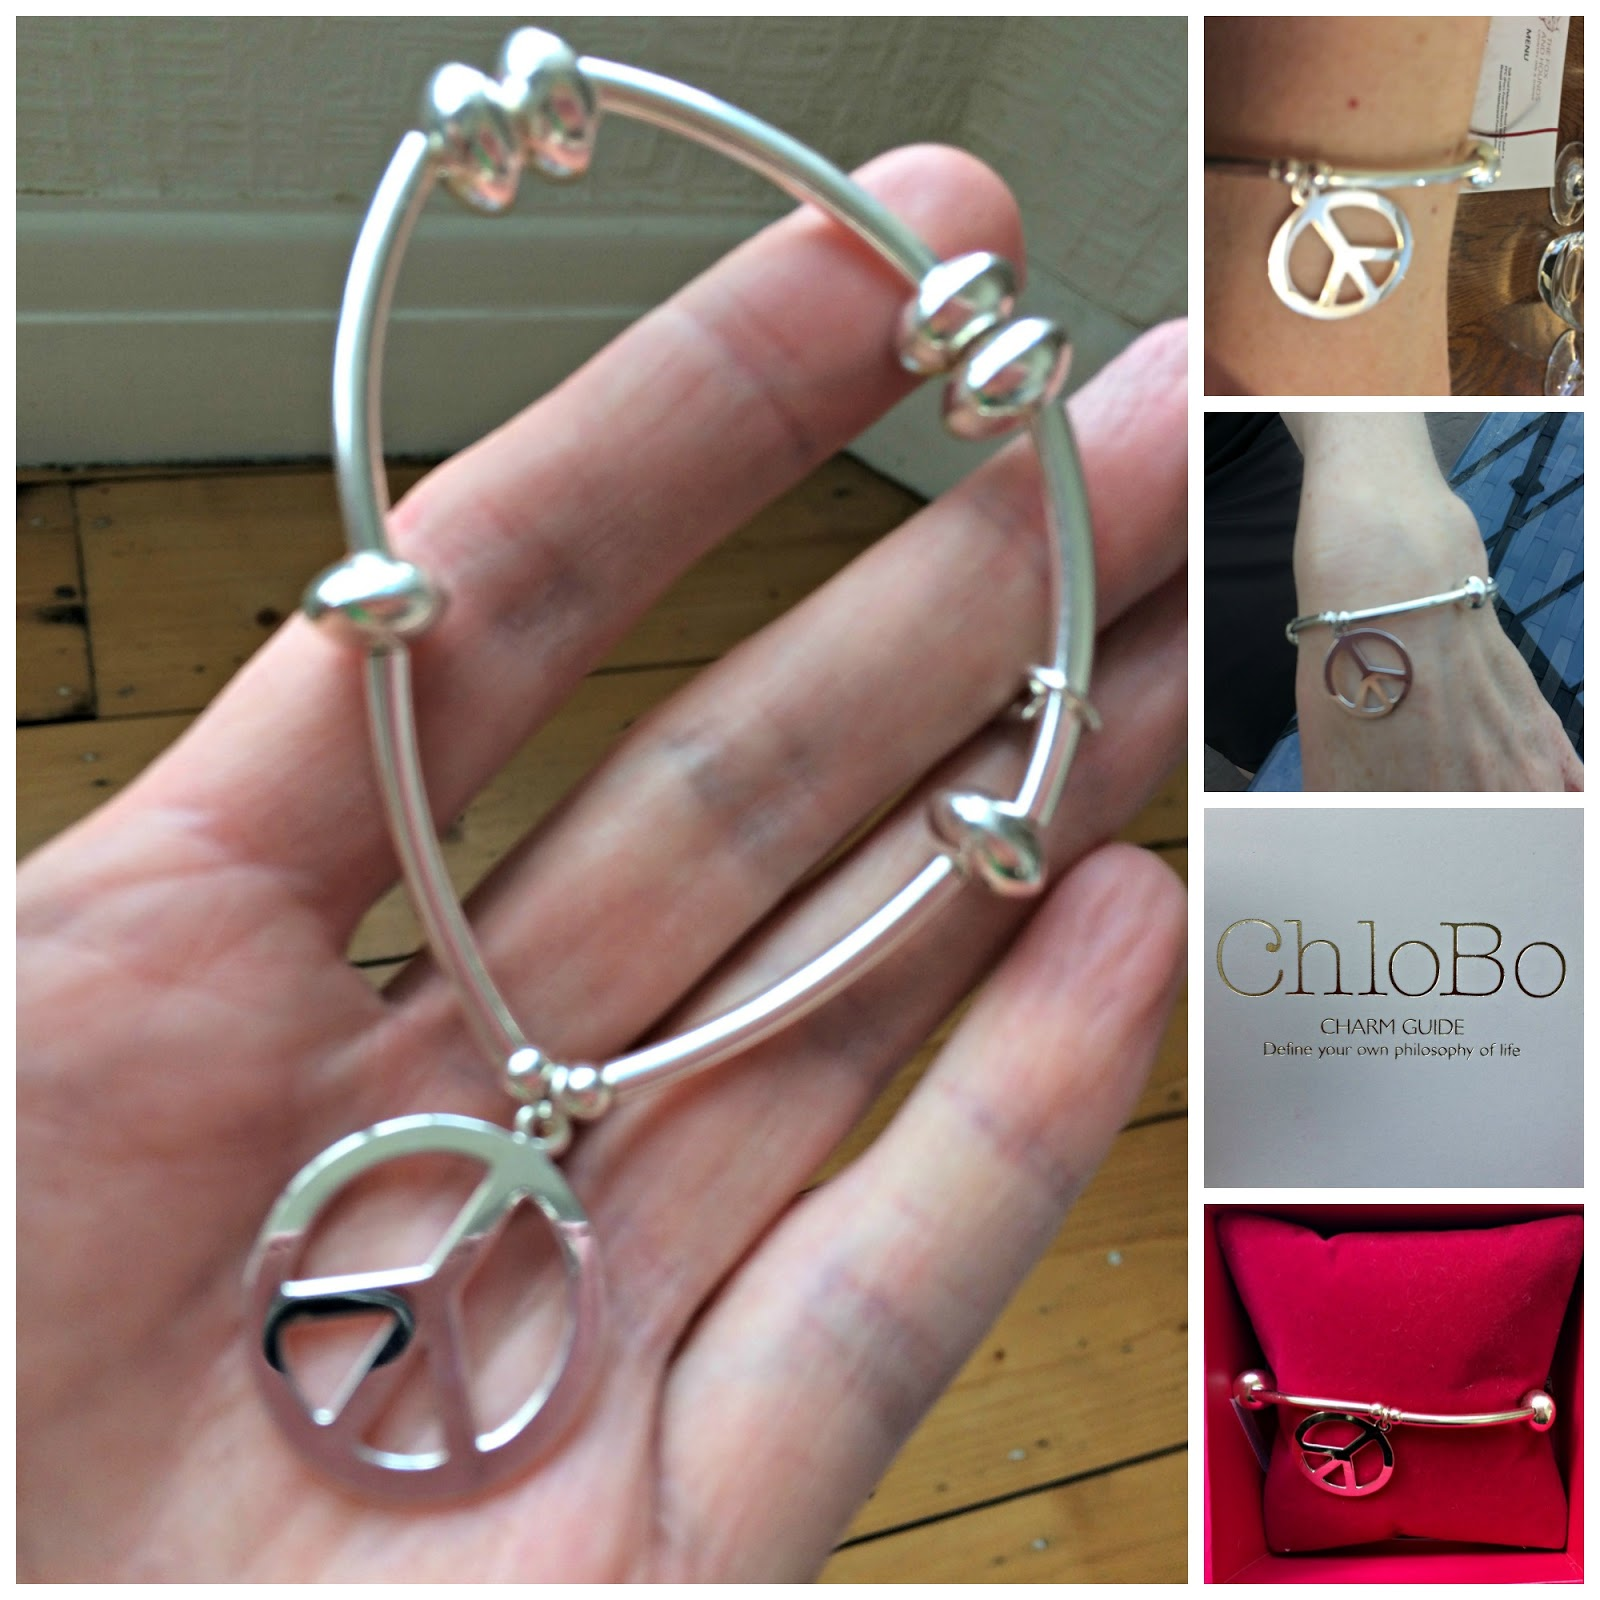 Showing off the ChloBo Noodle Disc Peace Bracelet